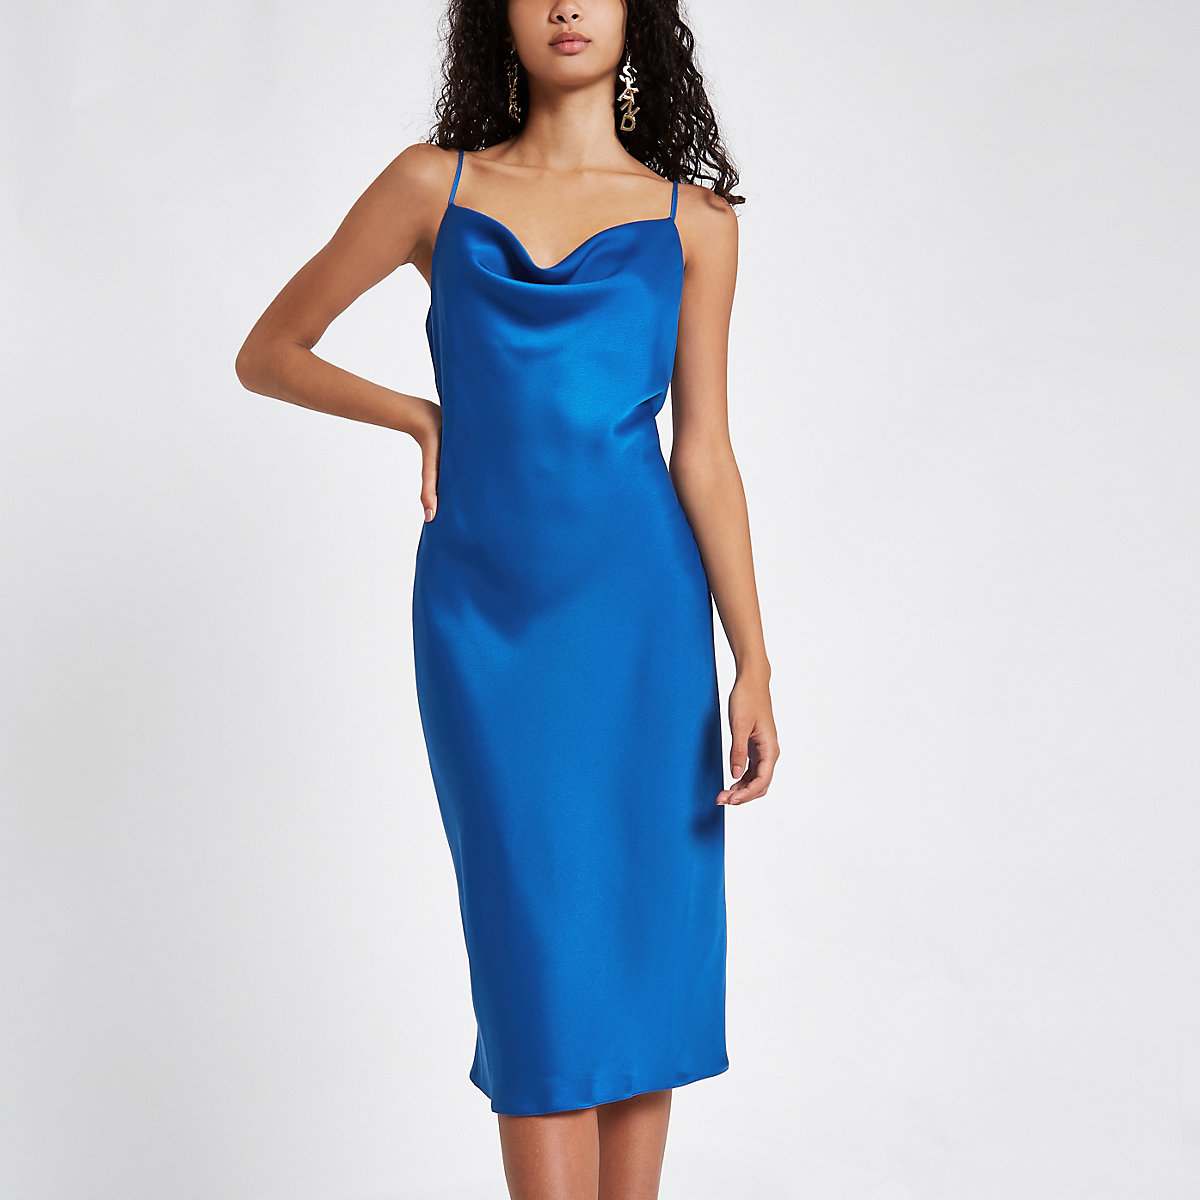 Cowl Neck Satin Wedding Dresses: Blue Satin Cowl Neck Slip Dress